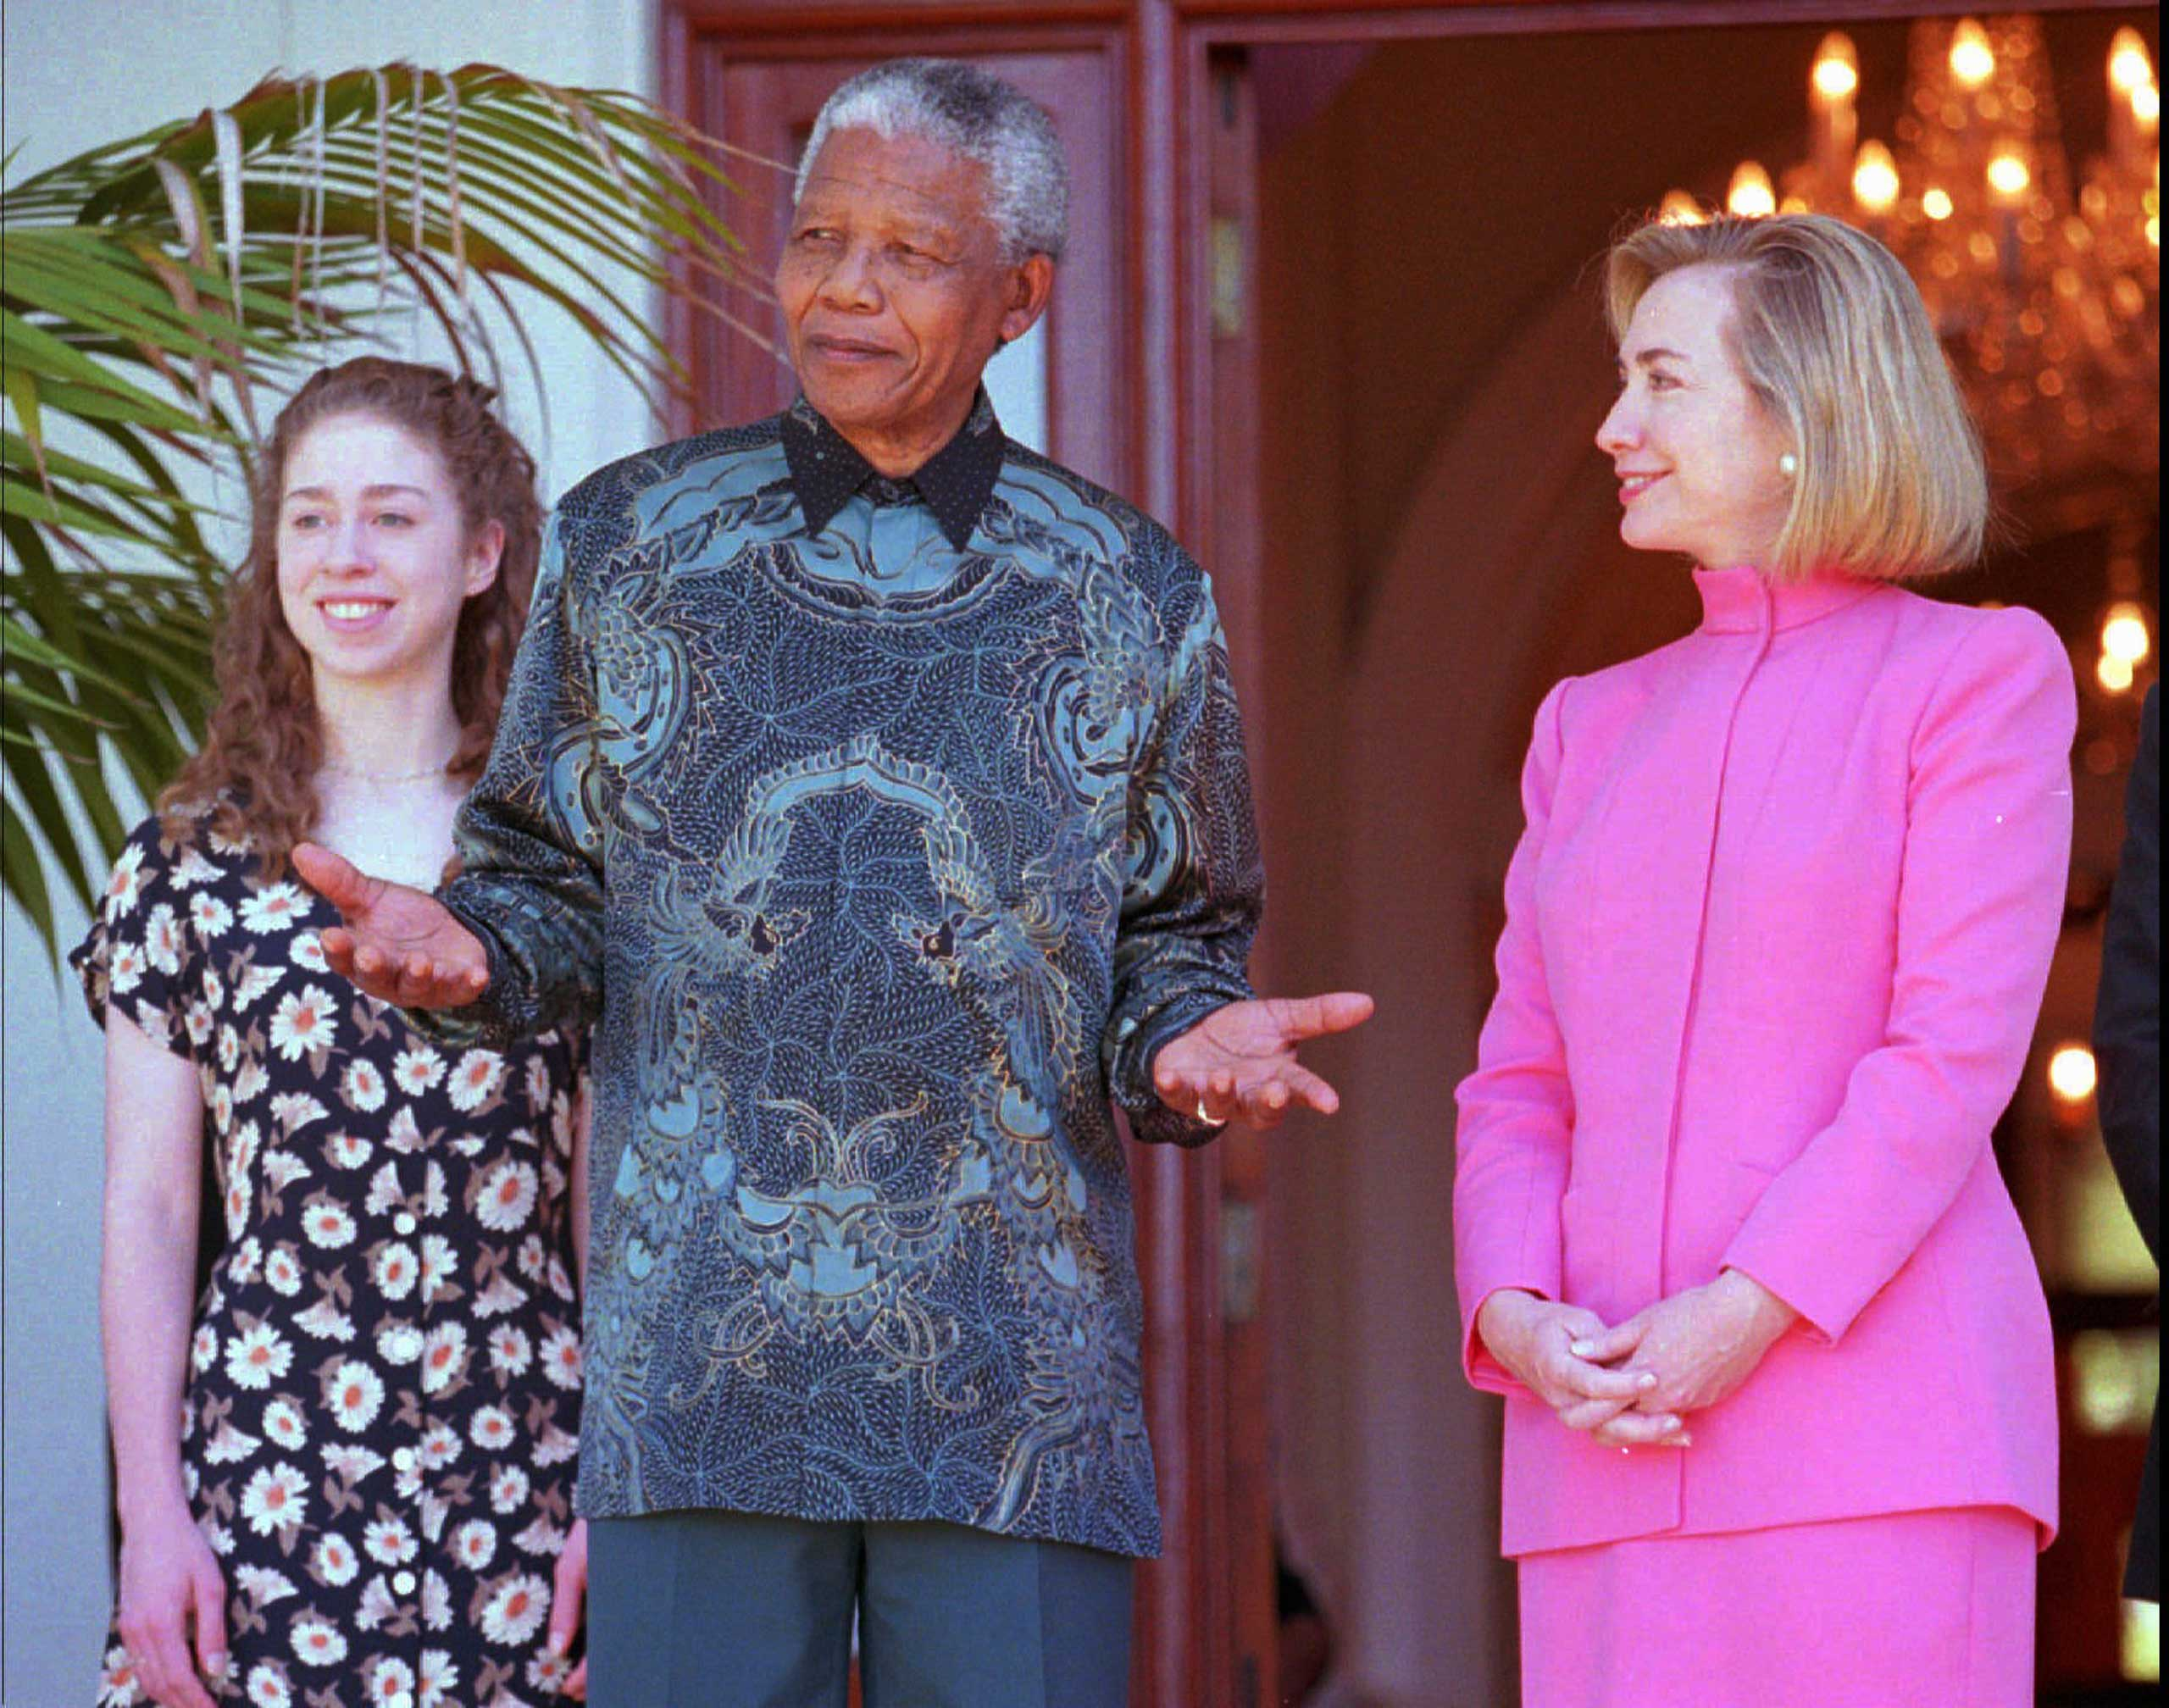 South African President Nelson Mandela and United States first lady Hillary Rodham Clinton, right, and daughter Chelsea Clinton, left, at a meeting in Cape Town, South Africa on March 20 1997.